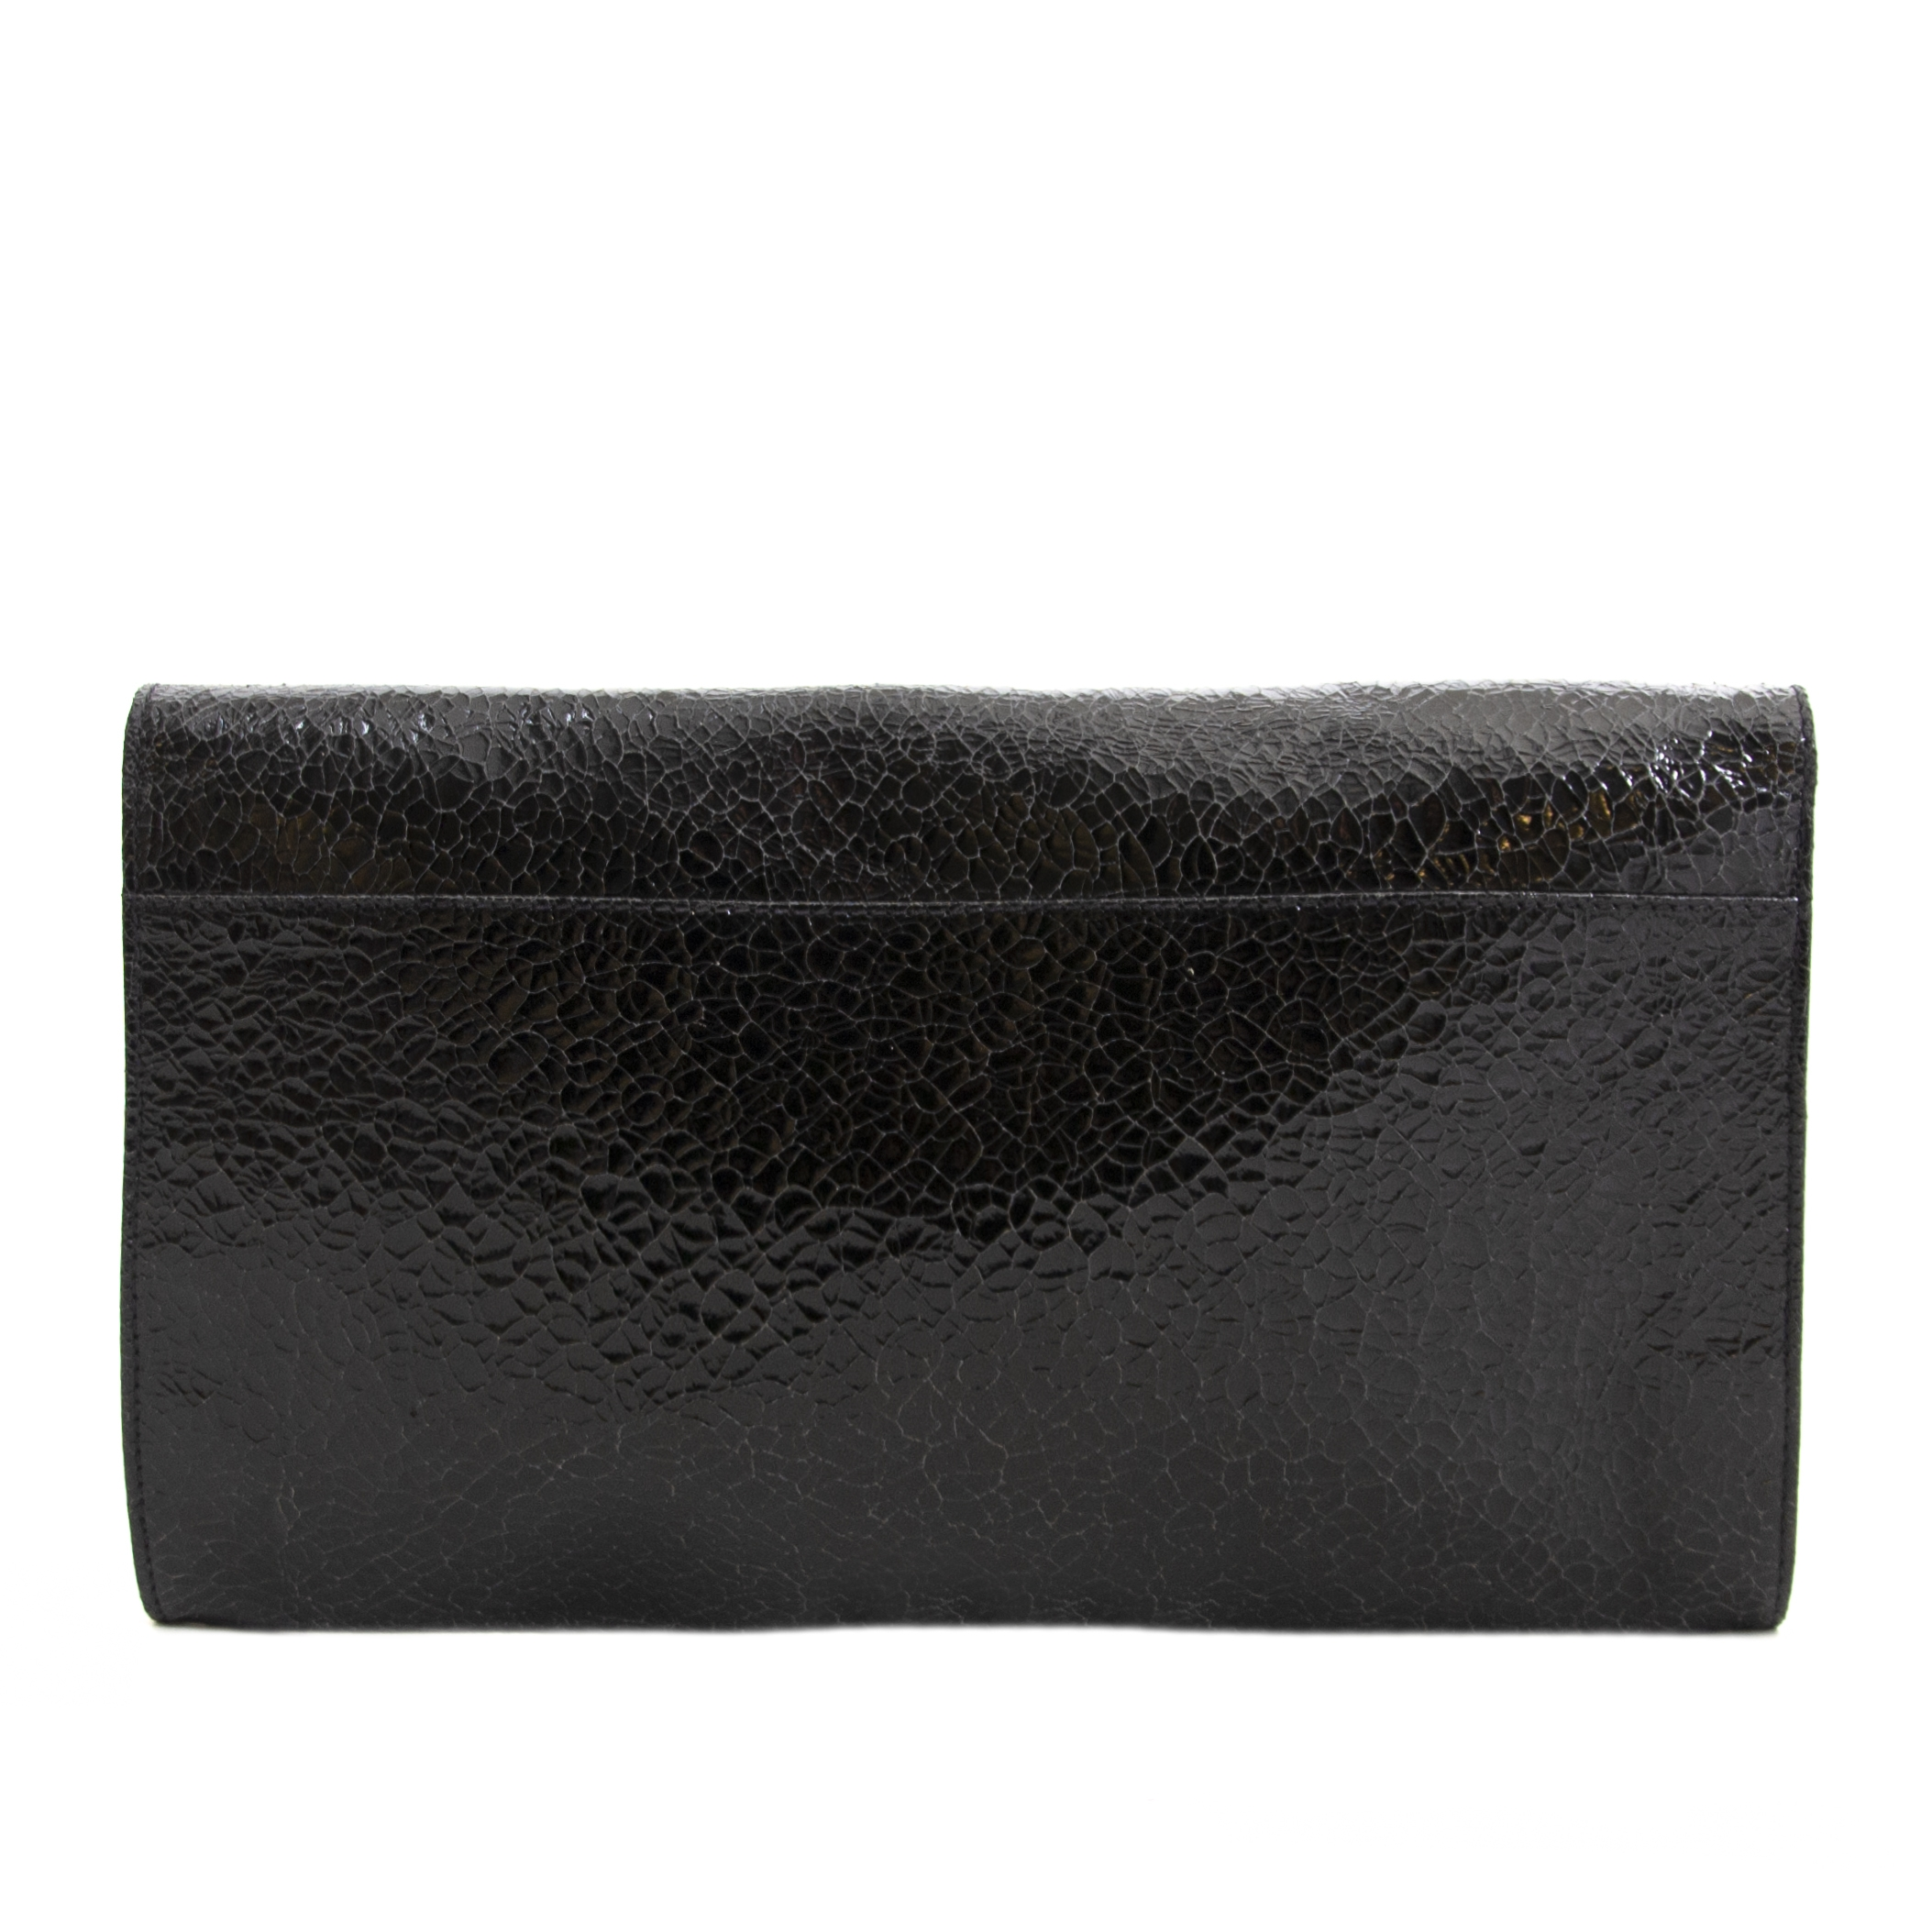 c853eb0e4d8 ... Authentic second hand vintage Mulberry Clutch Black buy online webshop  LabelLOV